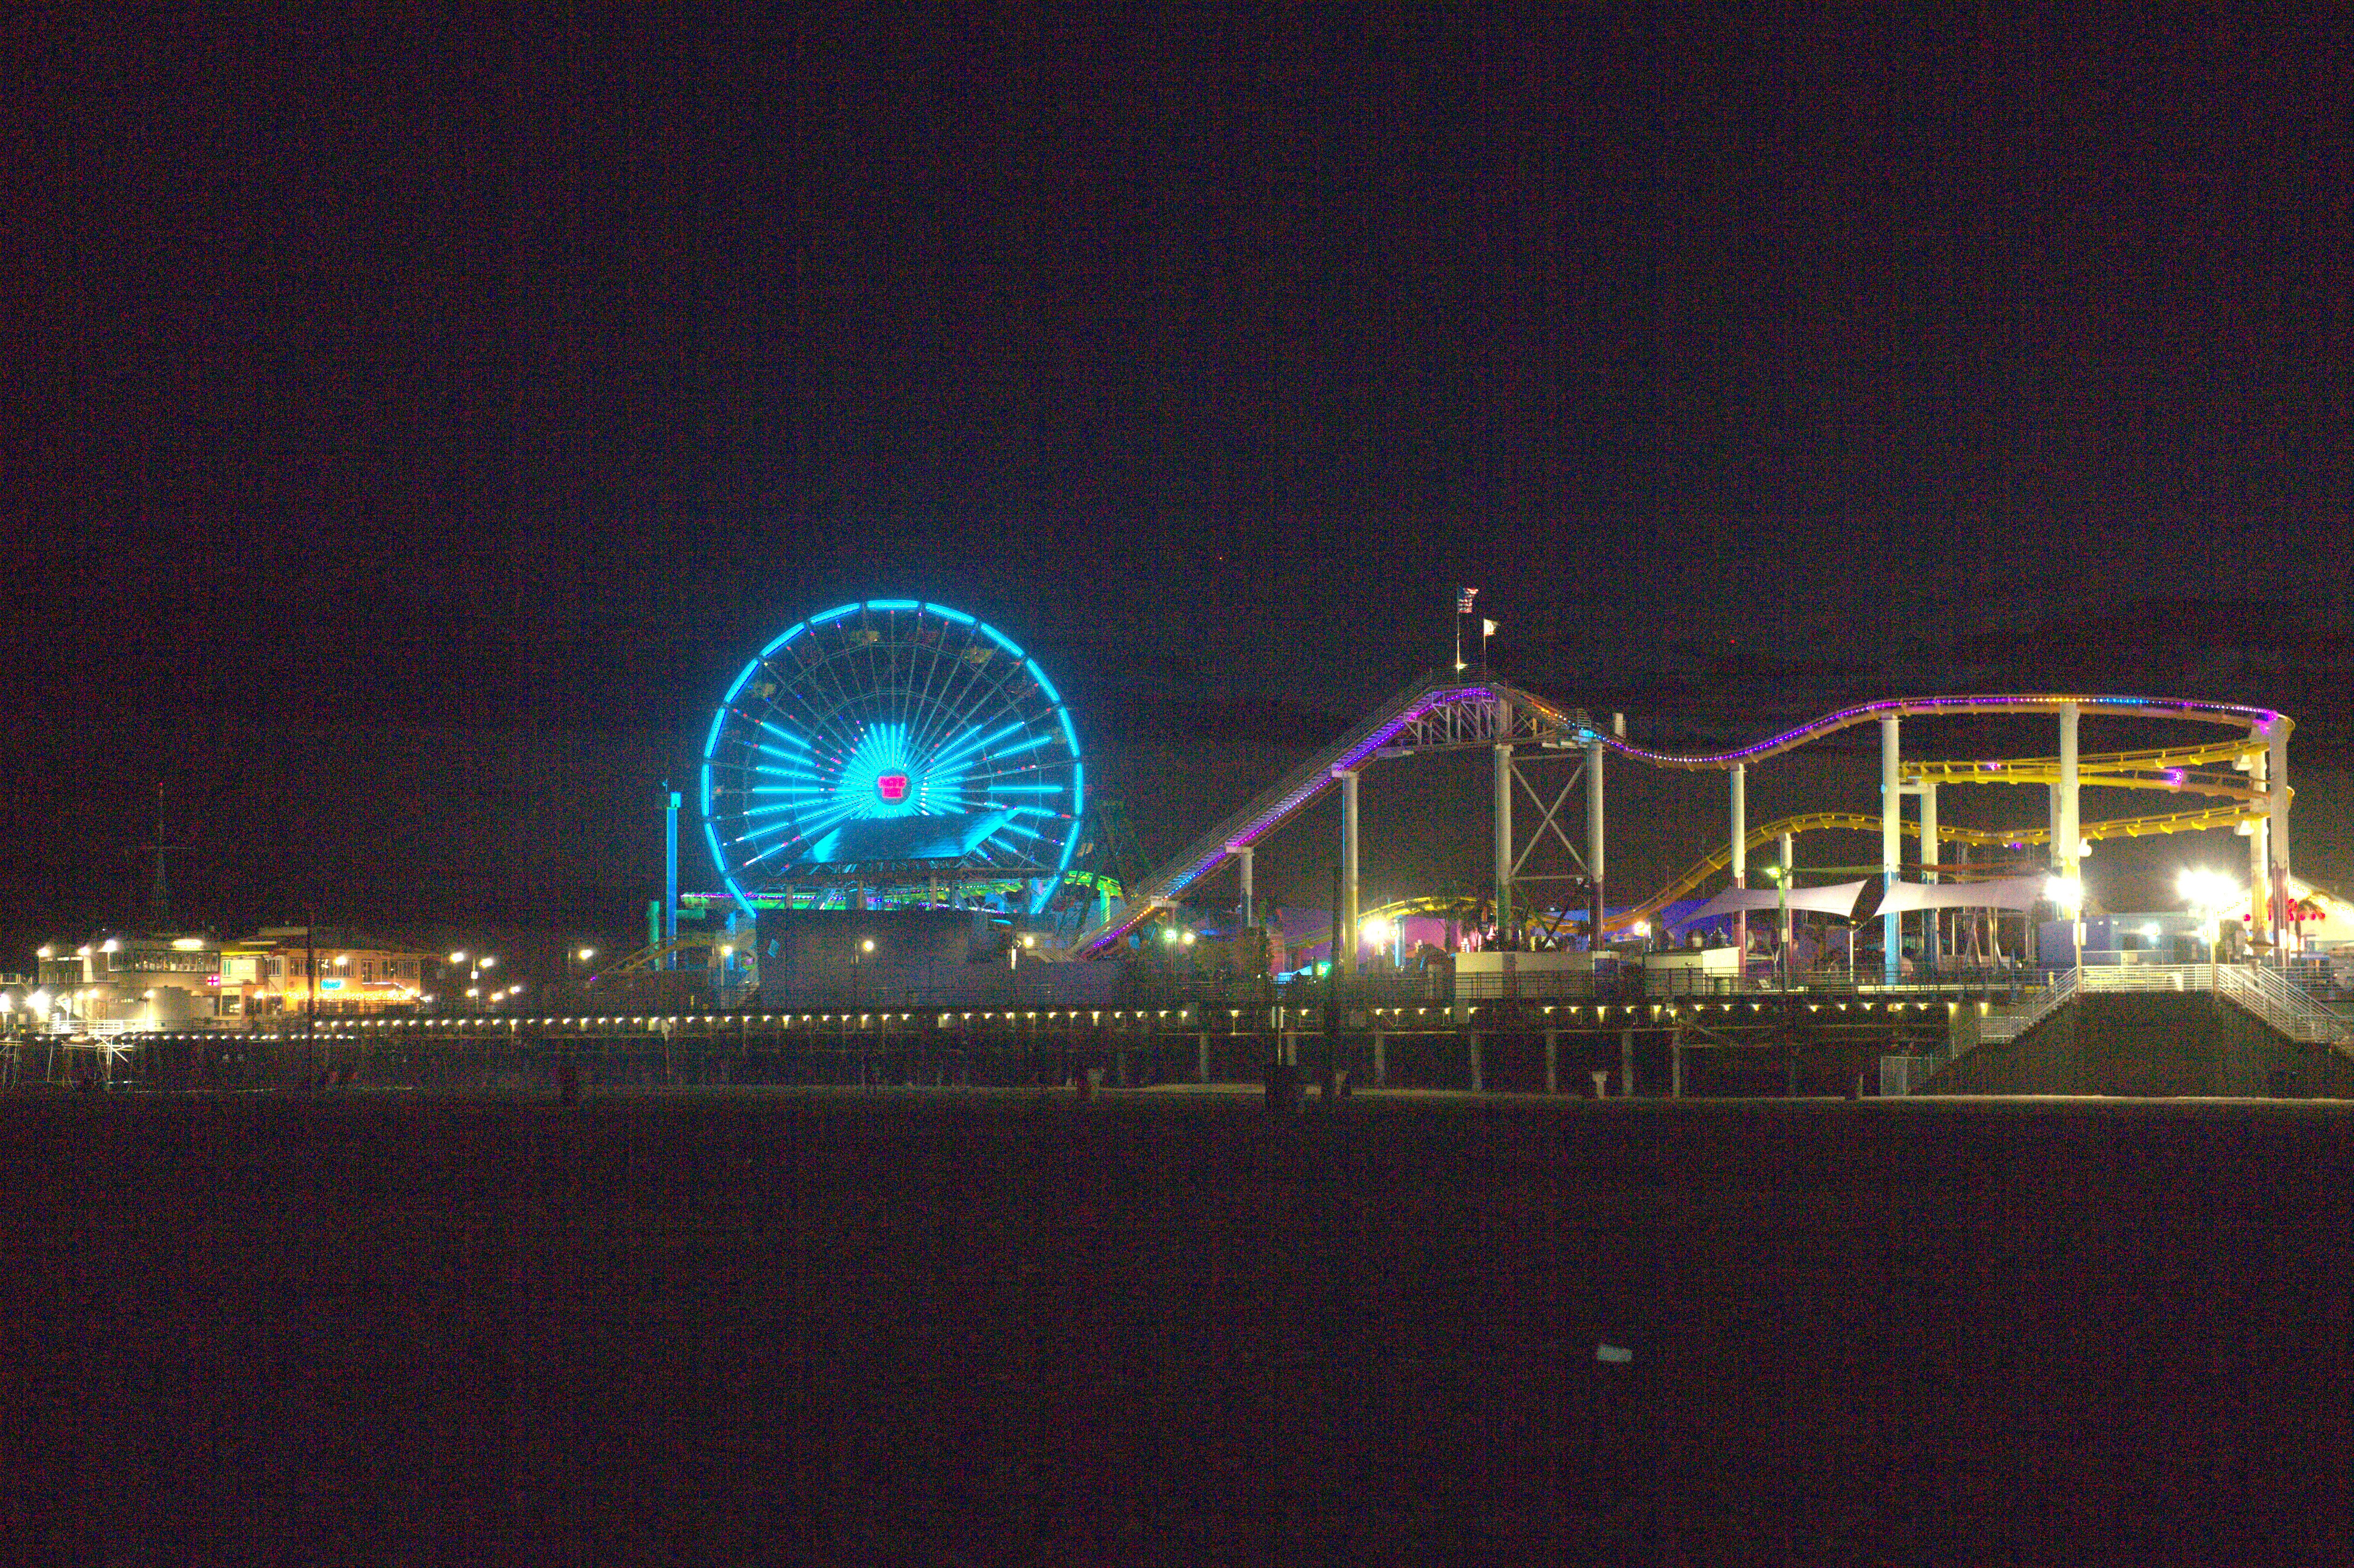 The ferris wheel on the Santa Monica Pier was lit up in MG's signature teal.